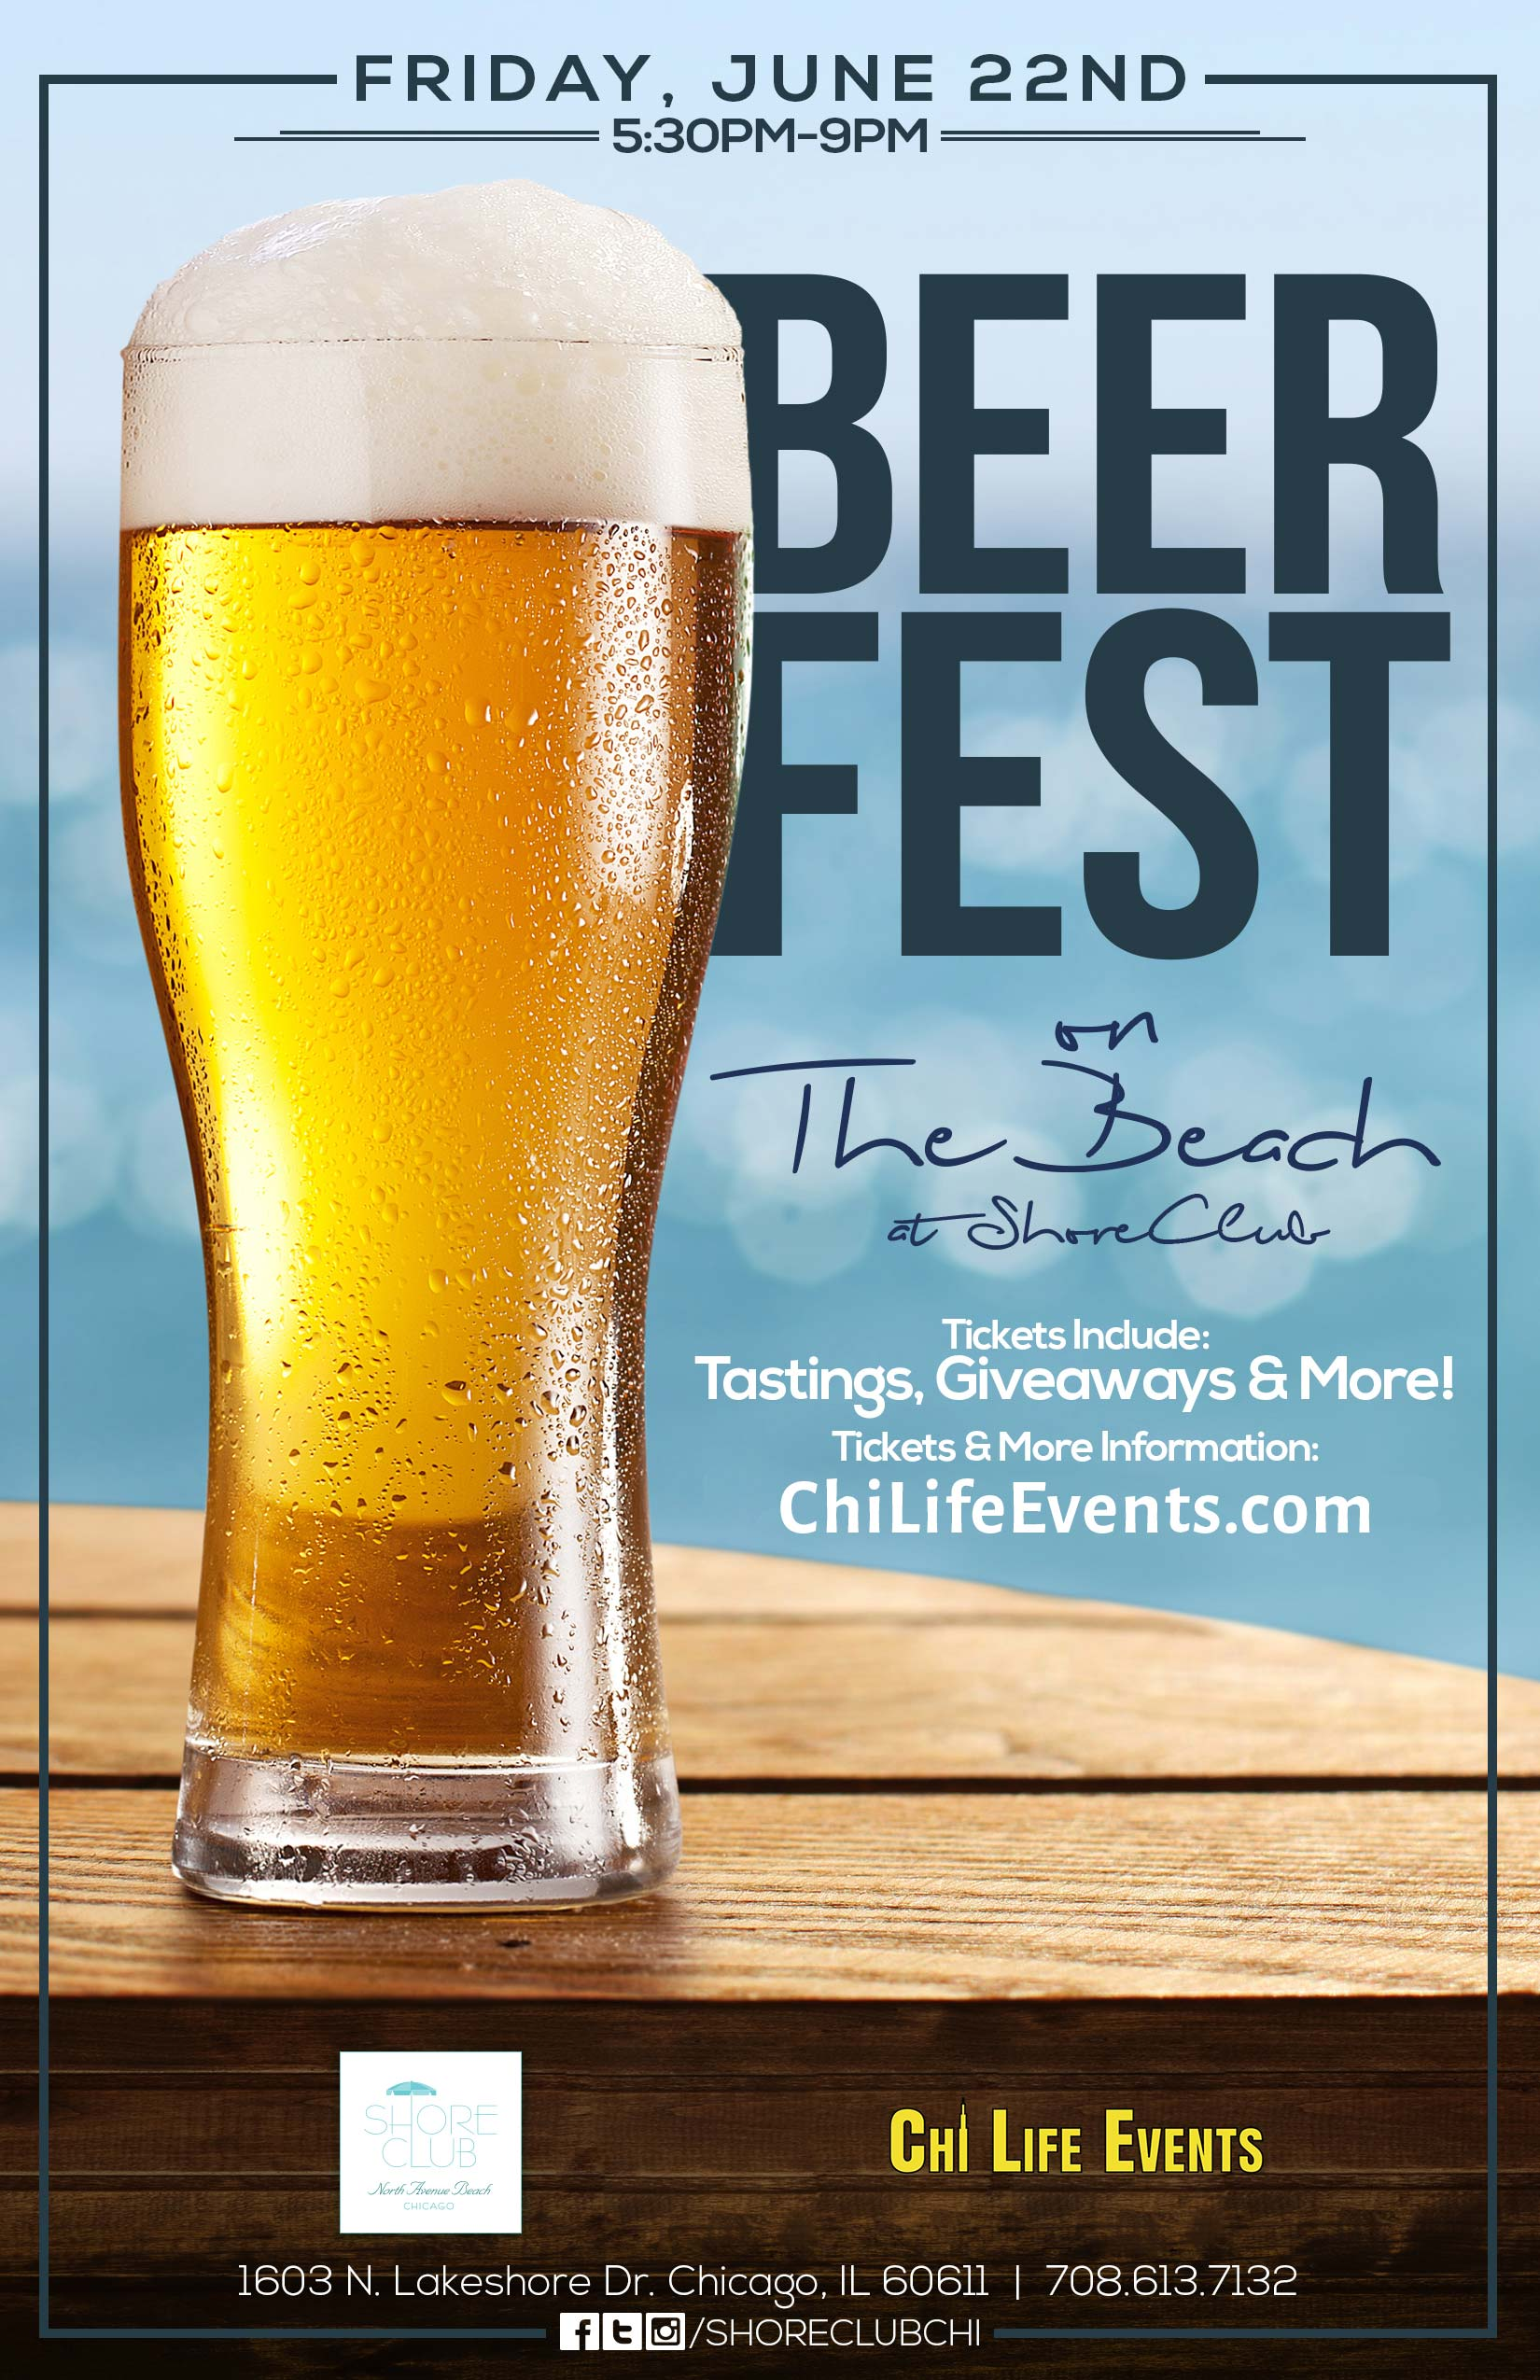 Beer Fest on the Beach - Tickets include beer tastings, giveaways & MORE! We will have a variety of different beers from available for sampling!